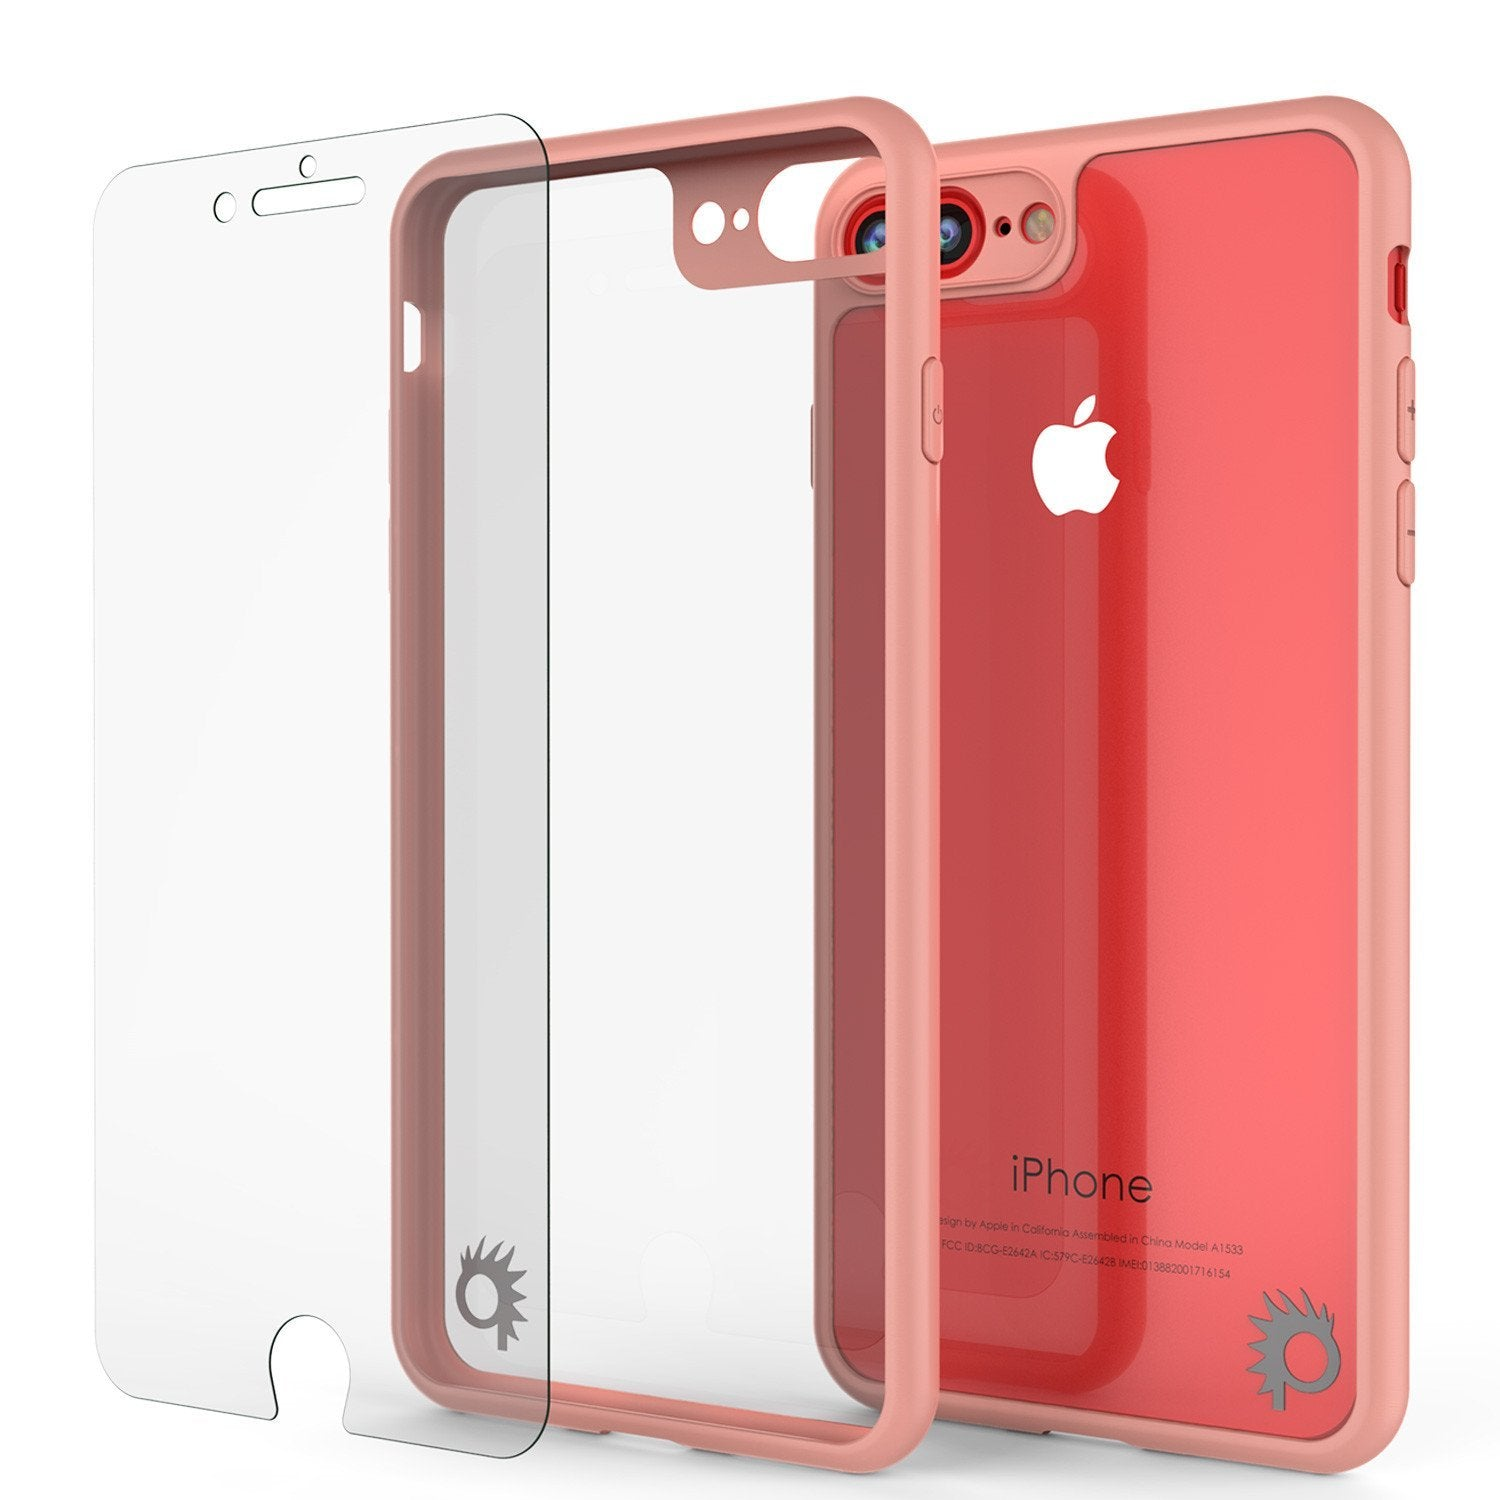 iPhone 8+ Plus Case [MASK Series] [PINK] Full Body Hybrid Dual Layer TPU Cover W/ protective Tempered Glass Screen Protector